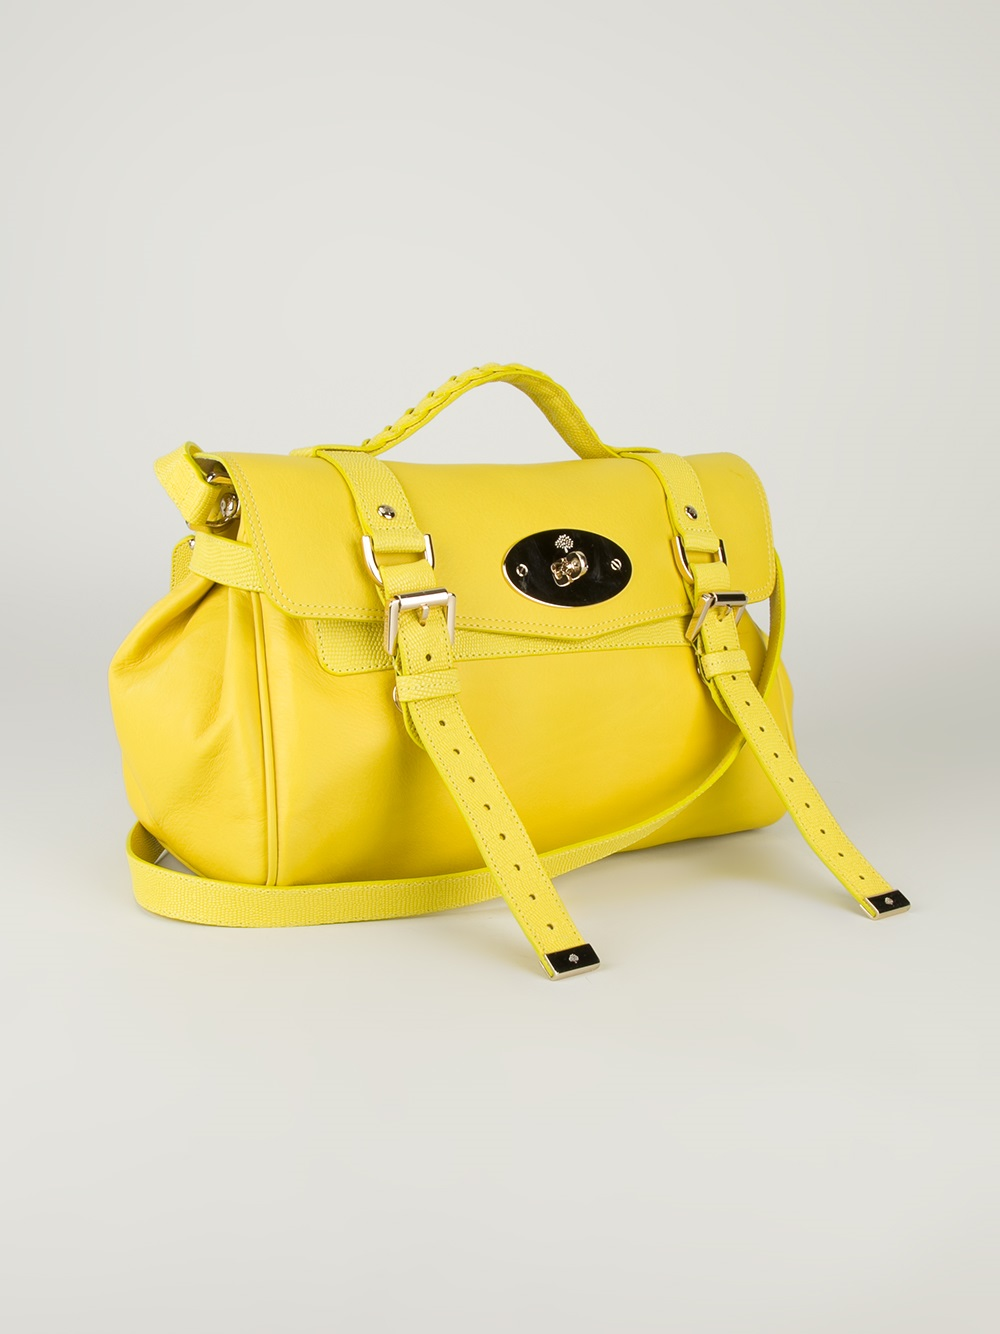 4c38f4ee743 ... canada mulberry alexa satchel in yellow lyst bfb13 a81b7 ...